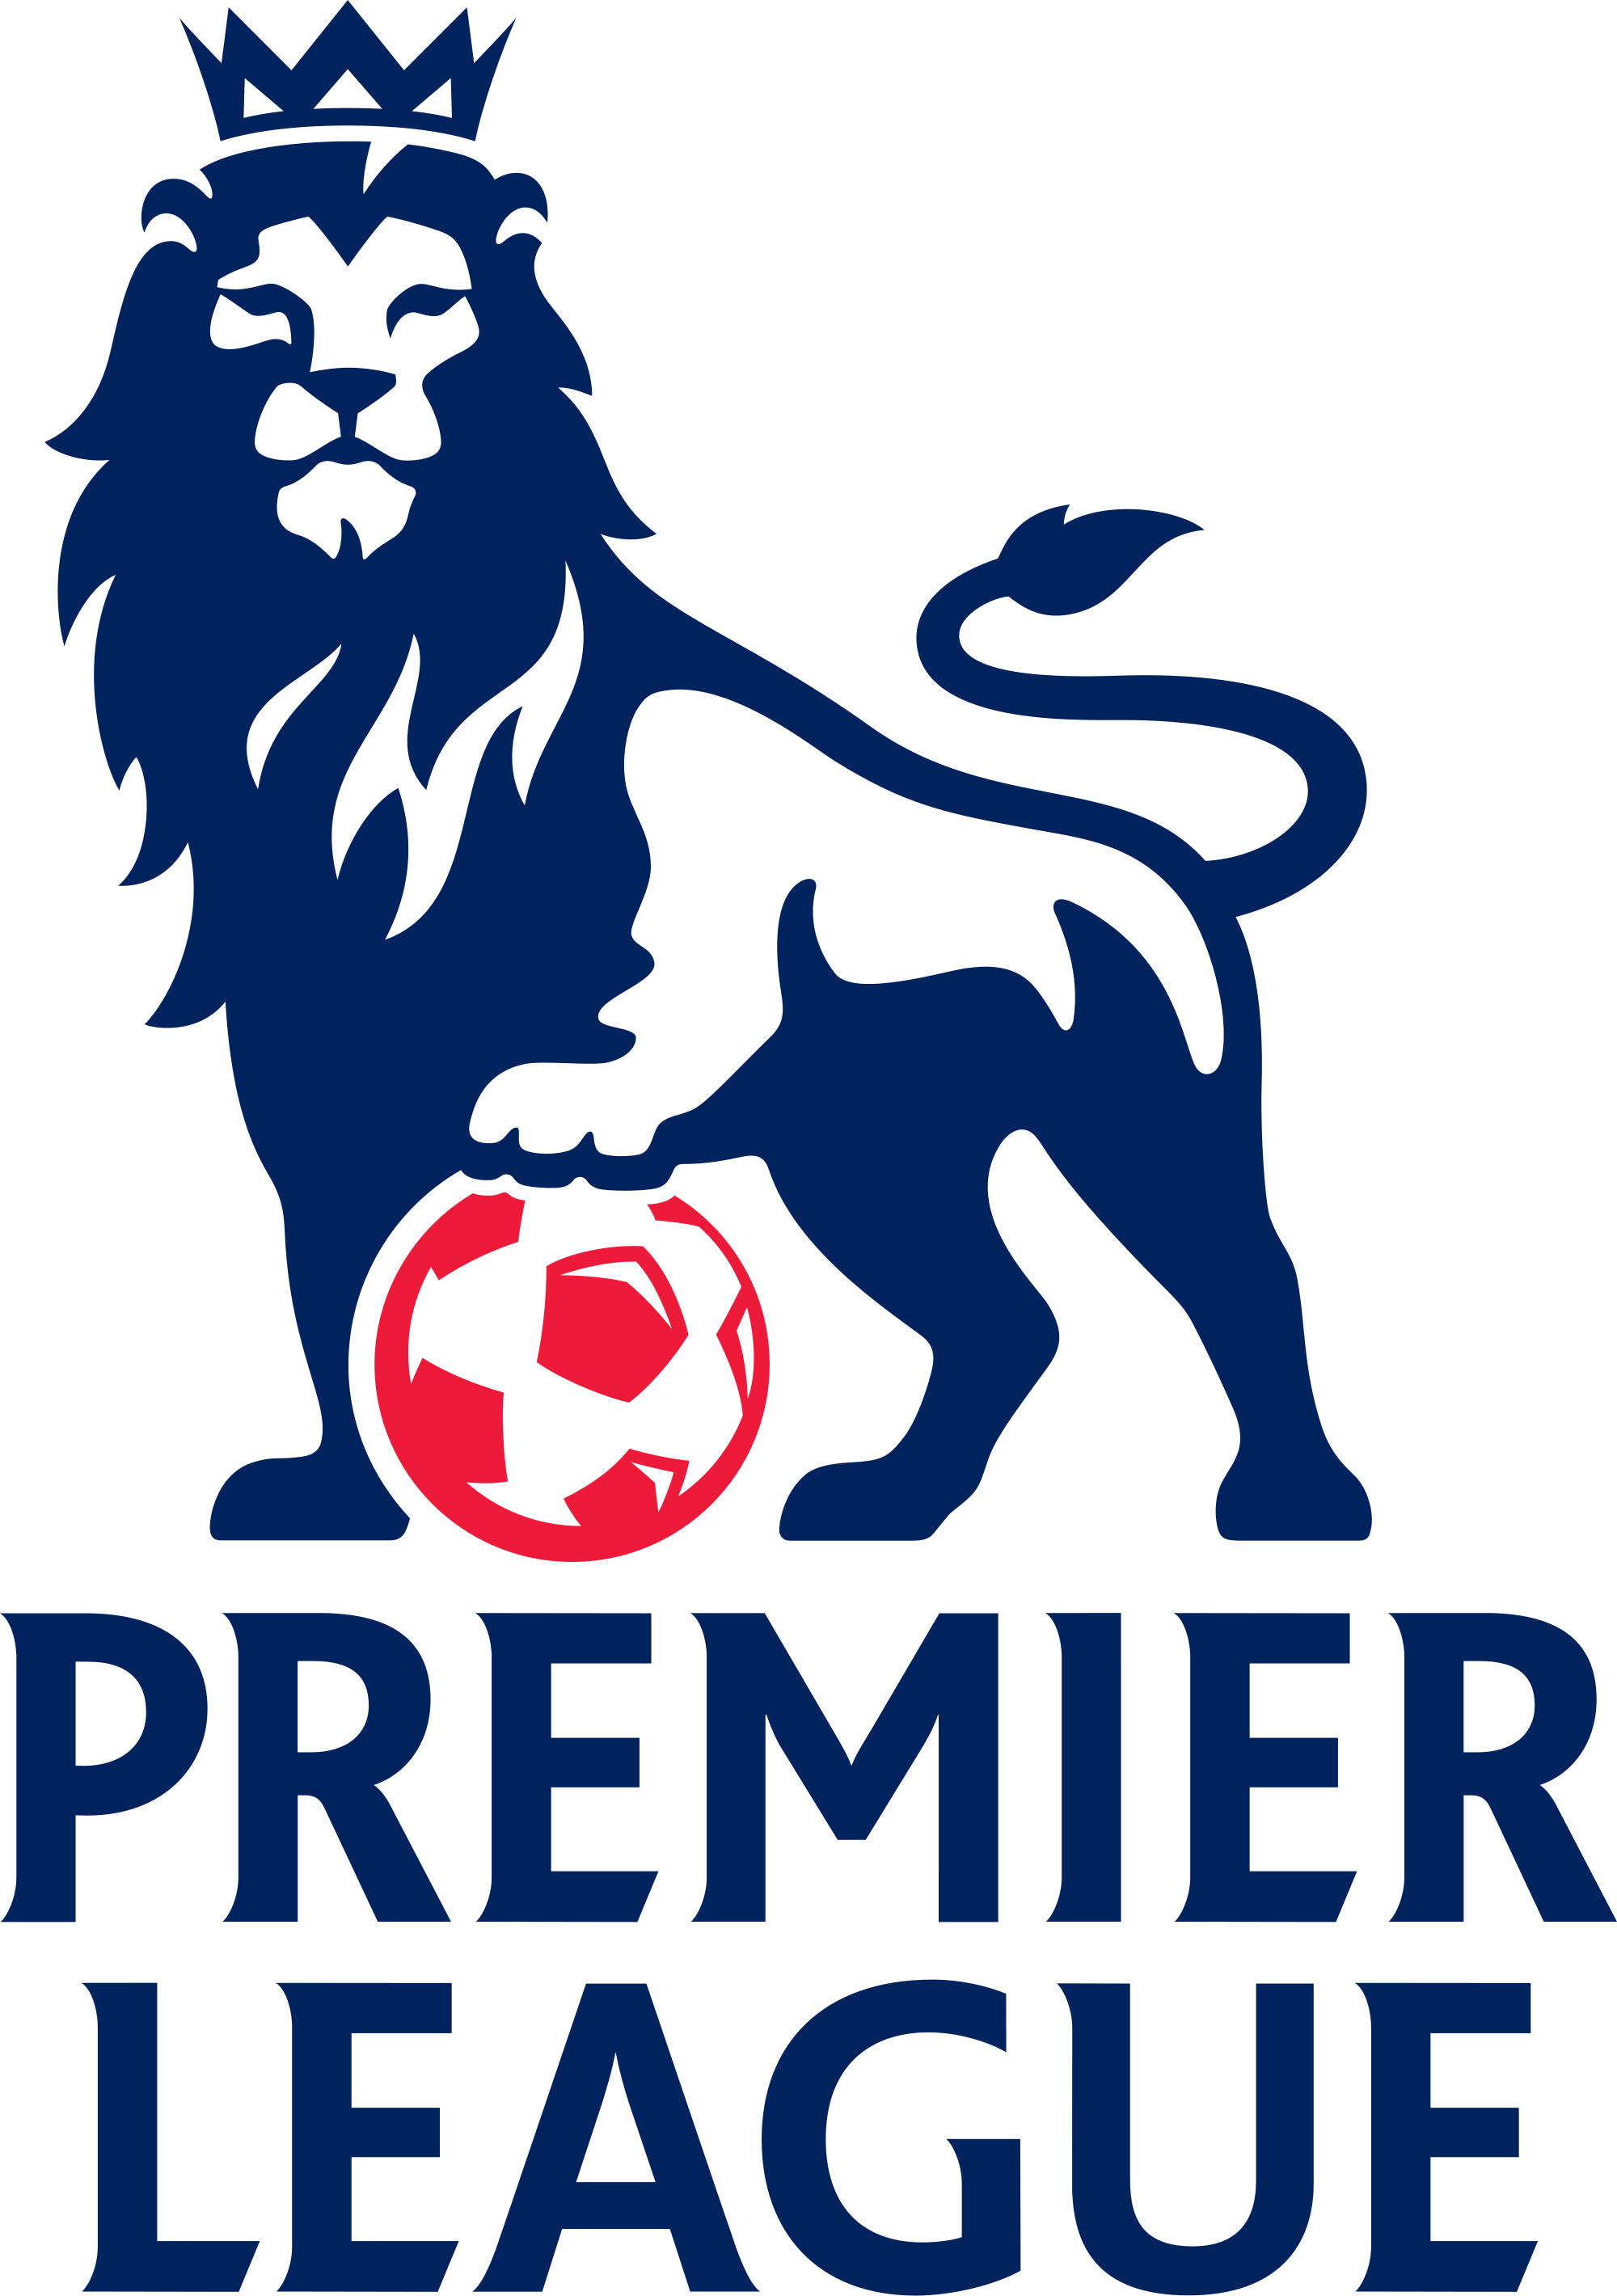 Pin By Rashad F On The Beautiful Game The Best Of Soccer Football Around The World Premier League Logo Premier League Football English Premier League